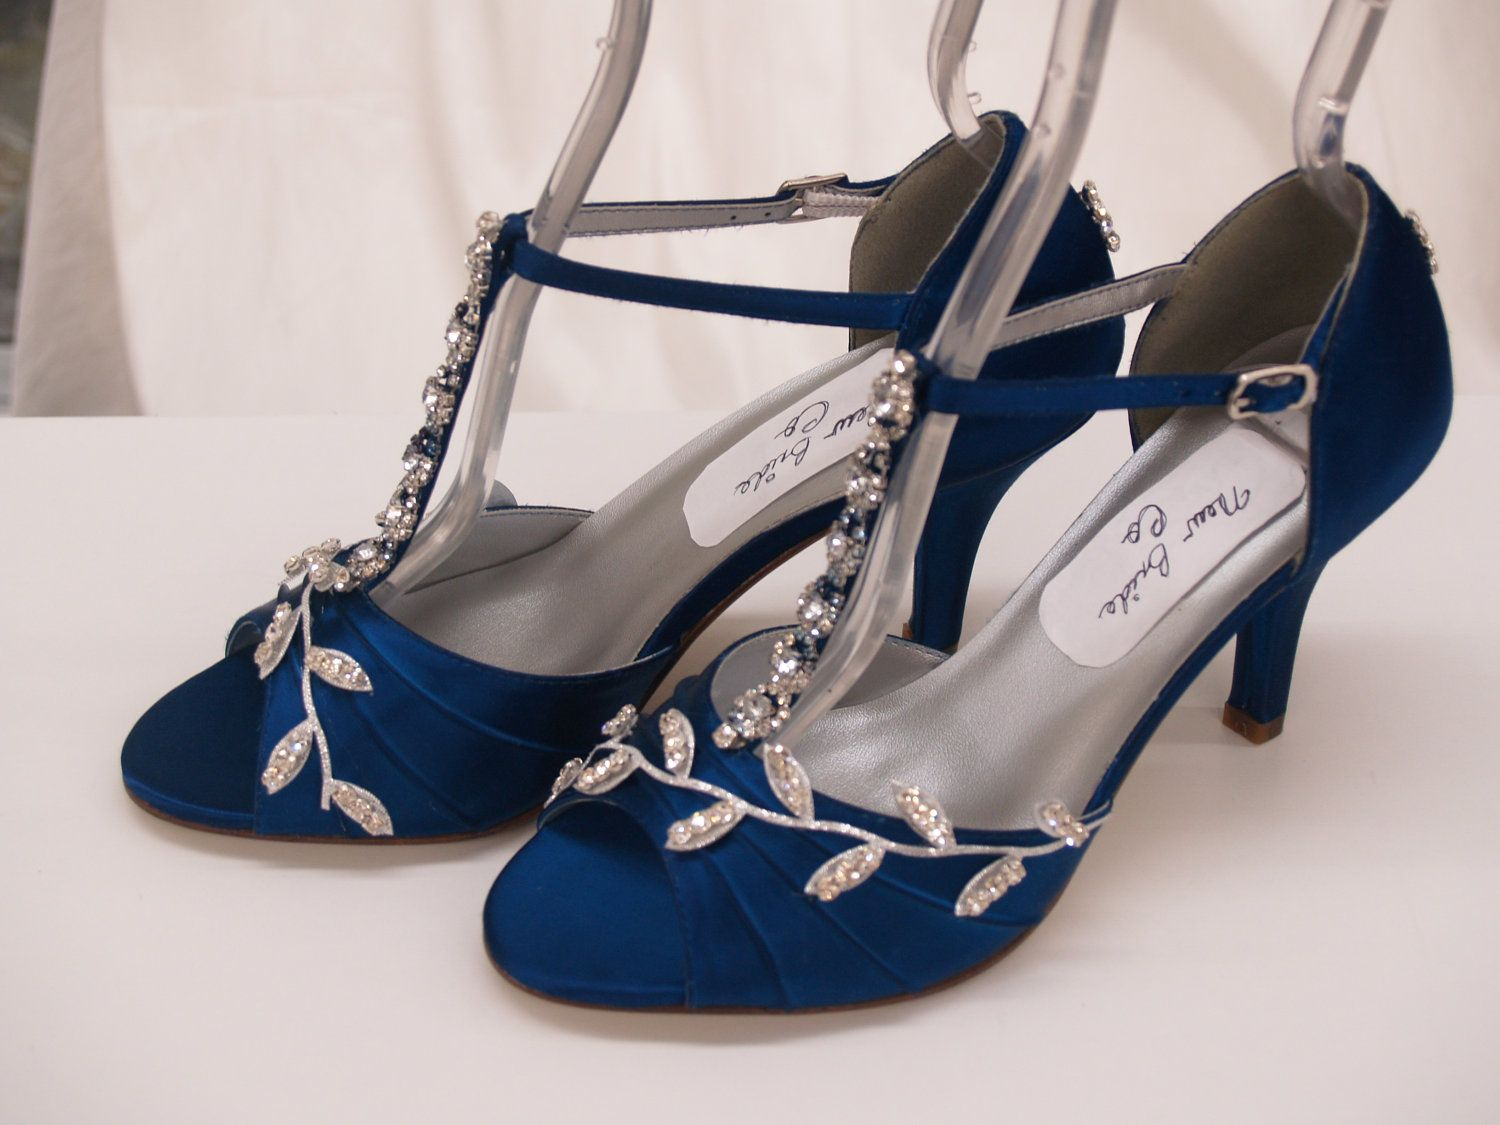 Blue wedding shoes royal blue with silver swarovski crystals blue wedding shoes royal blue with silver swarovski crystals 14900 via etsy junglespirit Choice Image